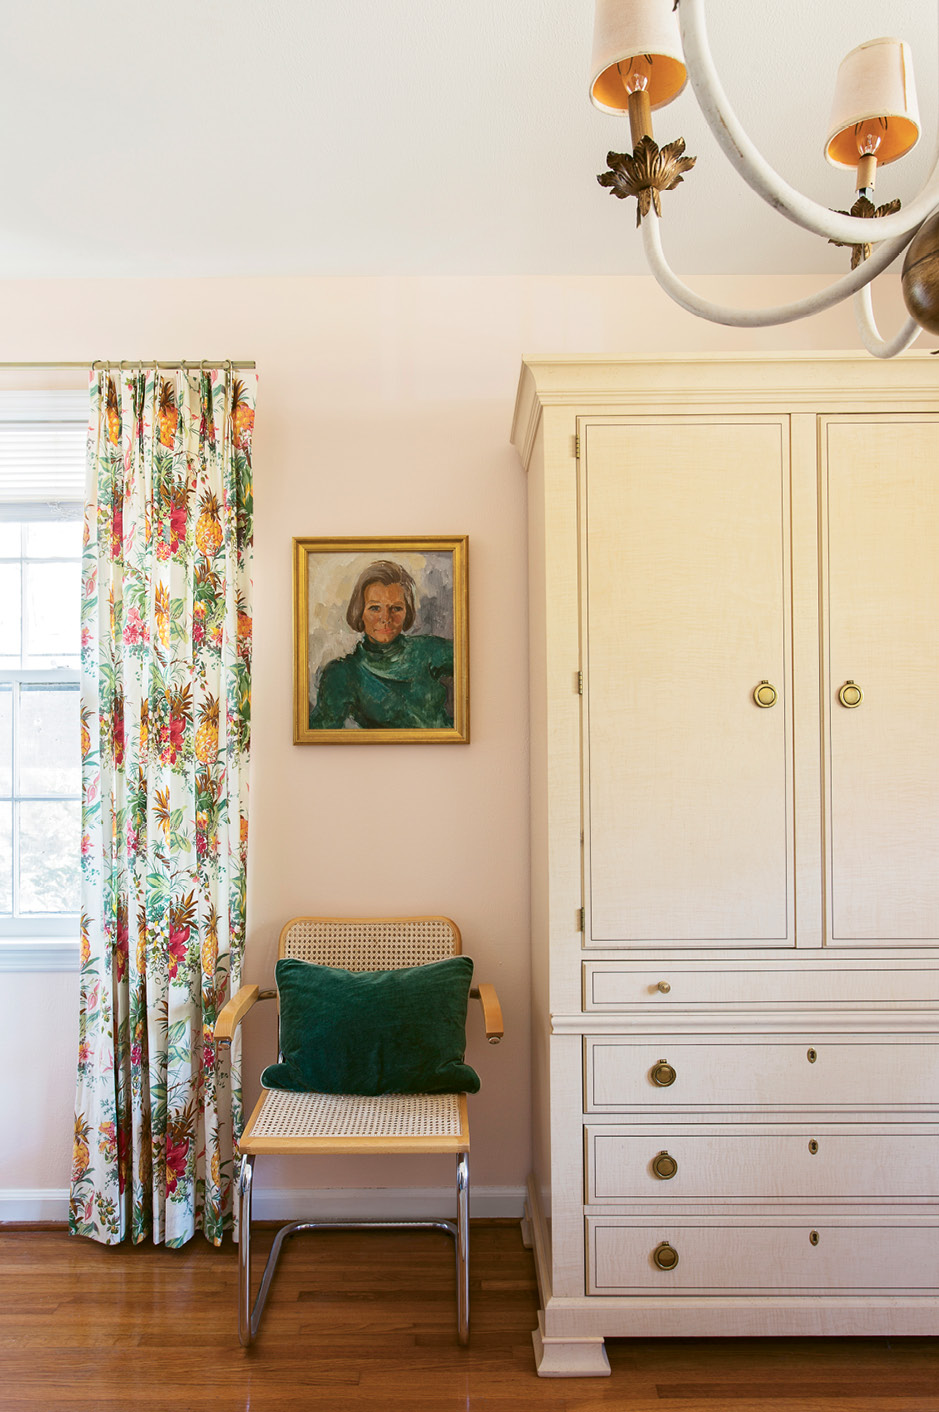 VINTAGE VIBE: In Tinkler's home office, an antique Drexel armoire provides a handsome home for paperwork. Caned chairs, botanical textiles, and an antique portrait in a gilt frame lend a laid-back glamour to the work space.